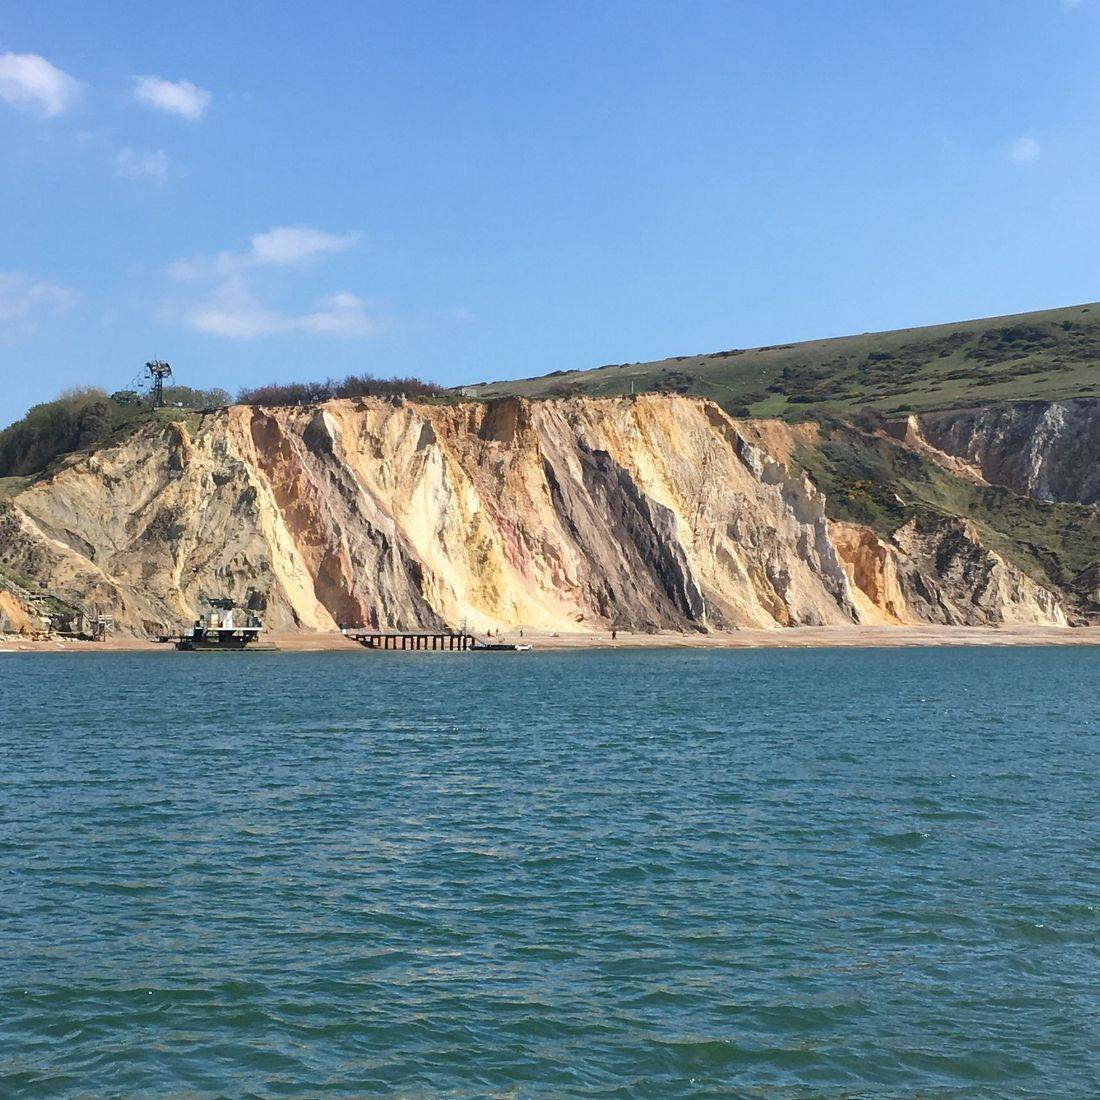 The coloured sand cliffs at Alum bay, Isle of Wight